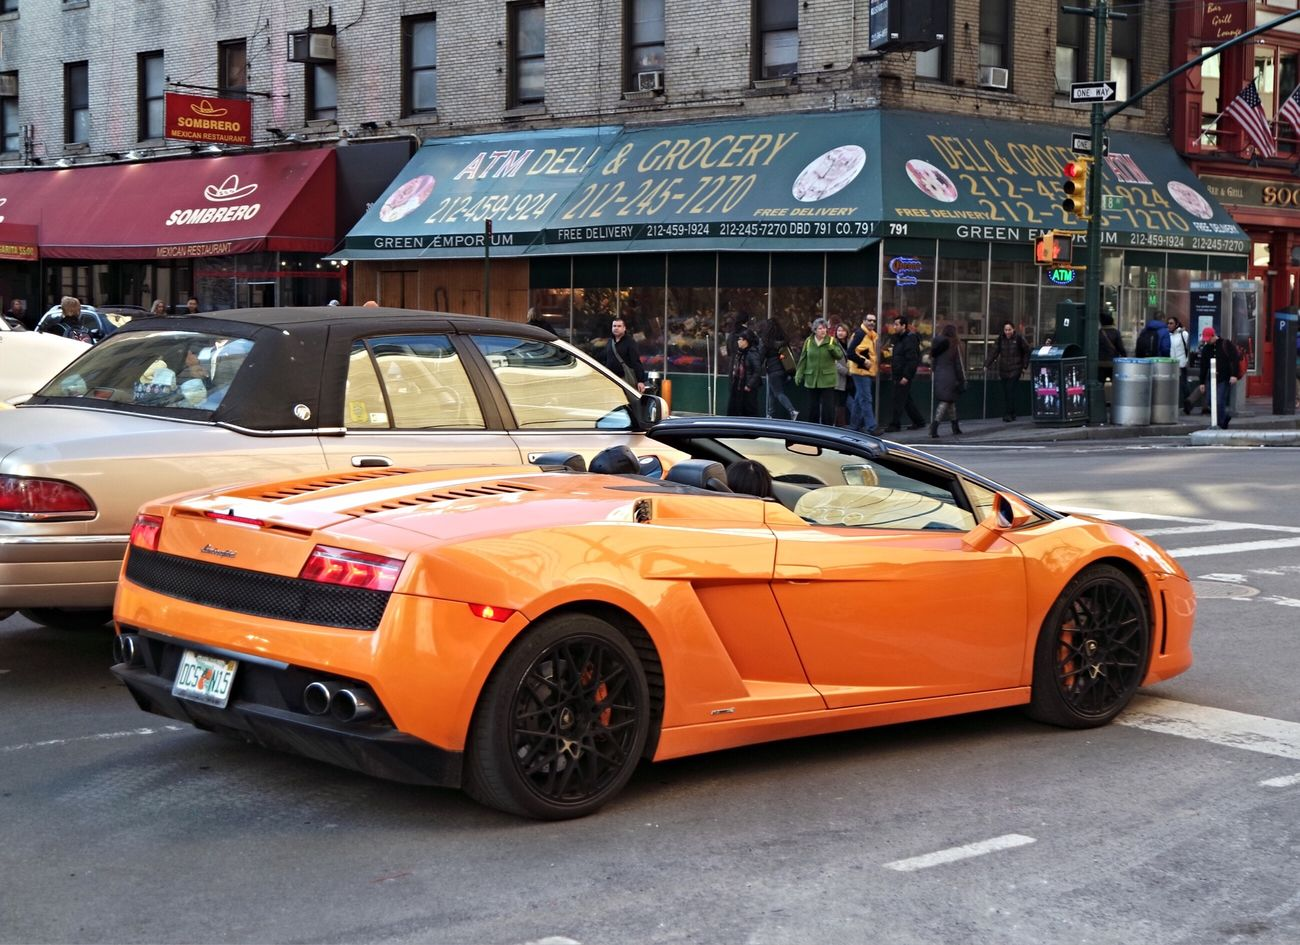 Lambo On Eigth Avenue. Can't say I see a driver! Lamborgini  LamborghiniLovers Exotic Cars Designer Goods Newyorkstateofmind Check This Out